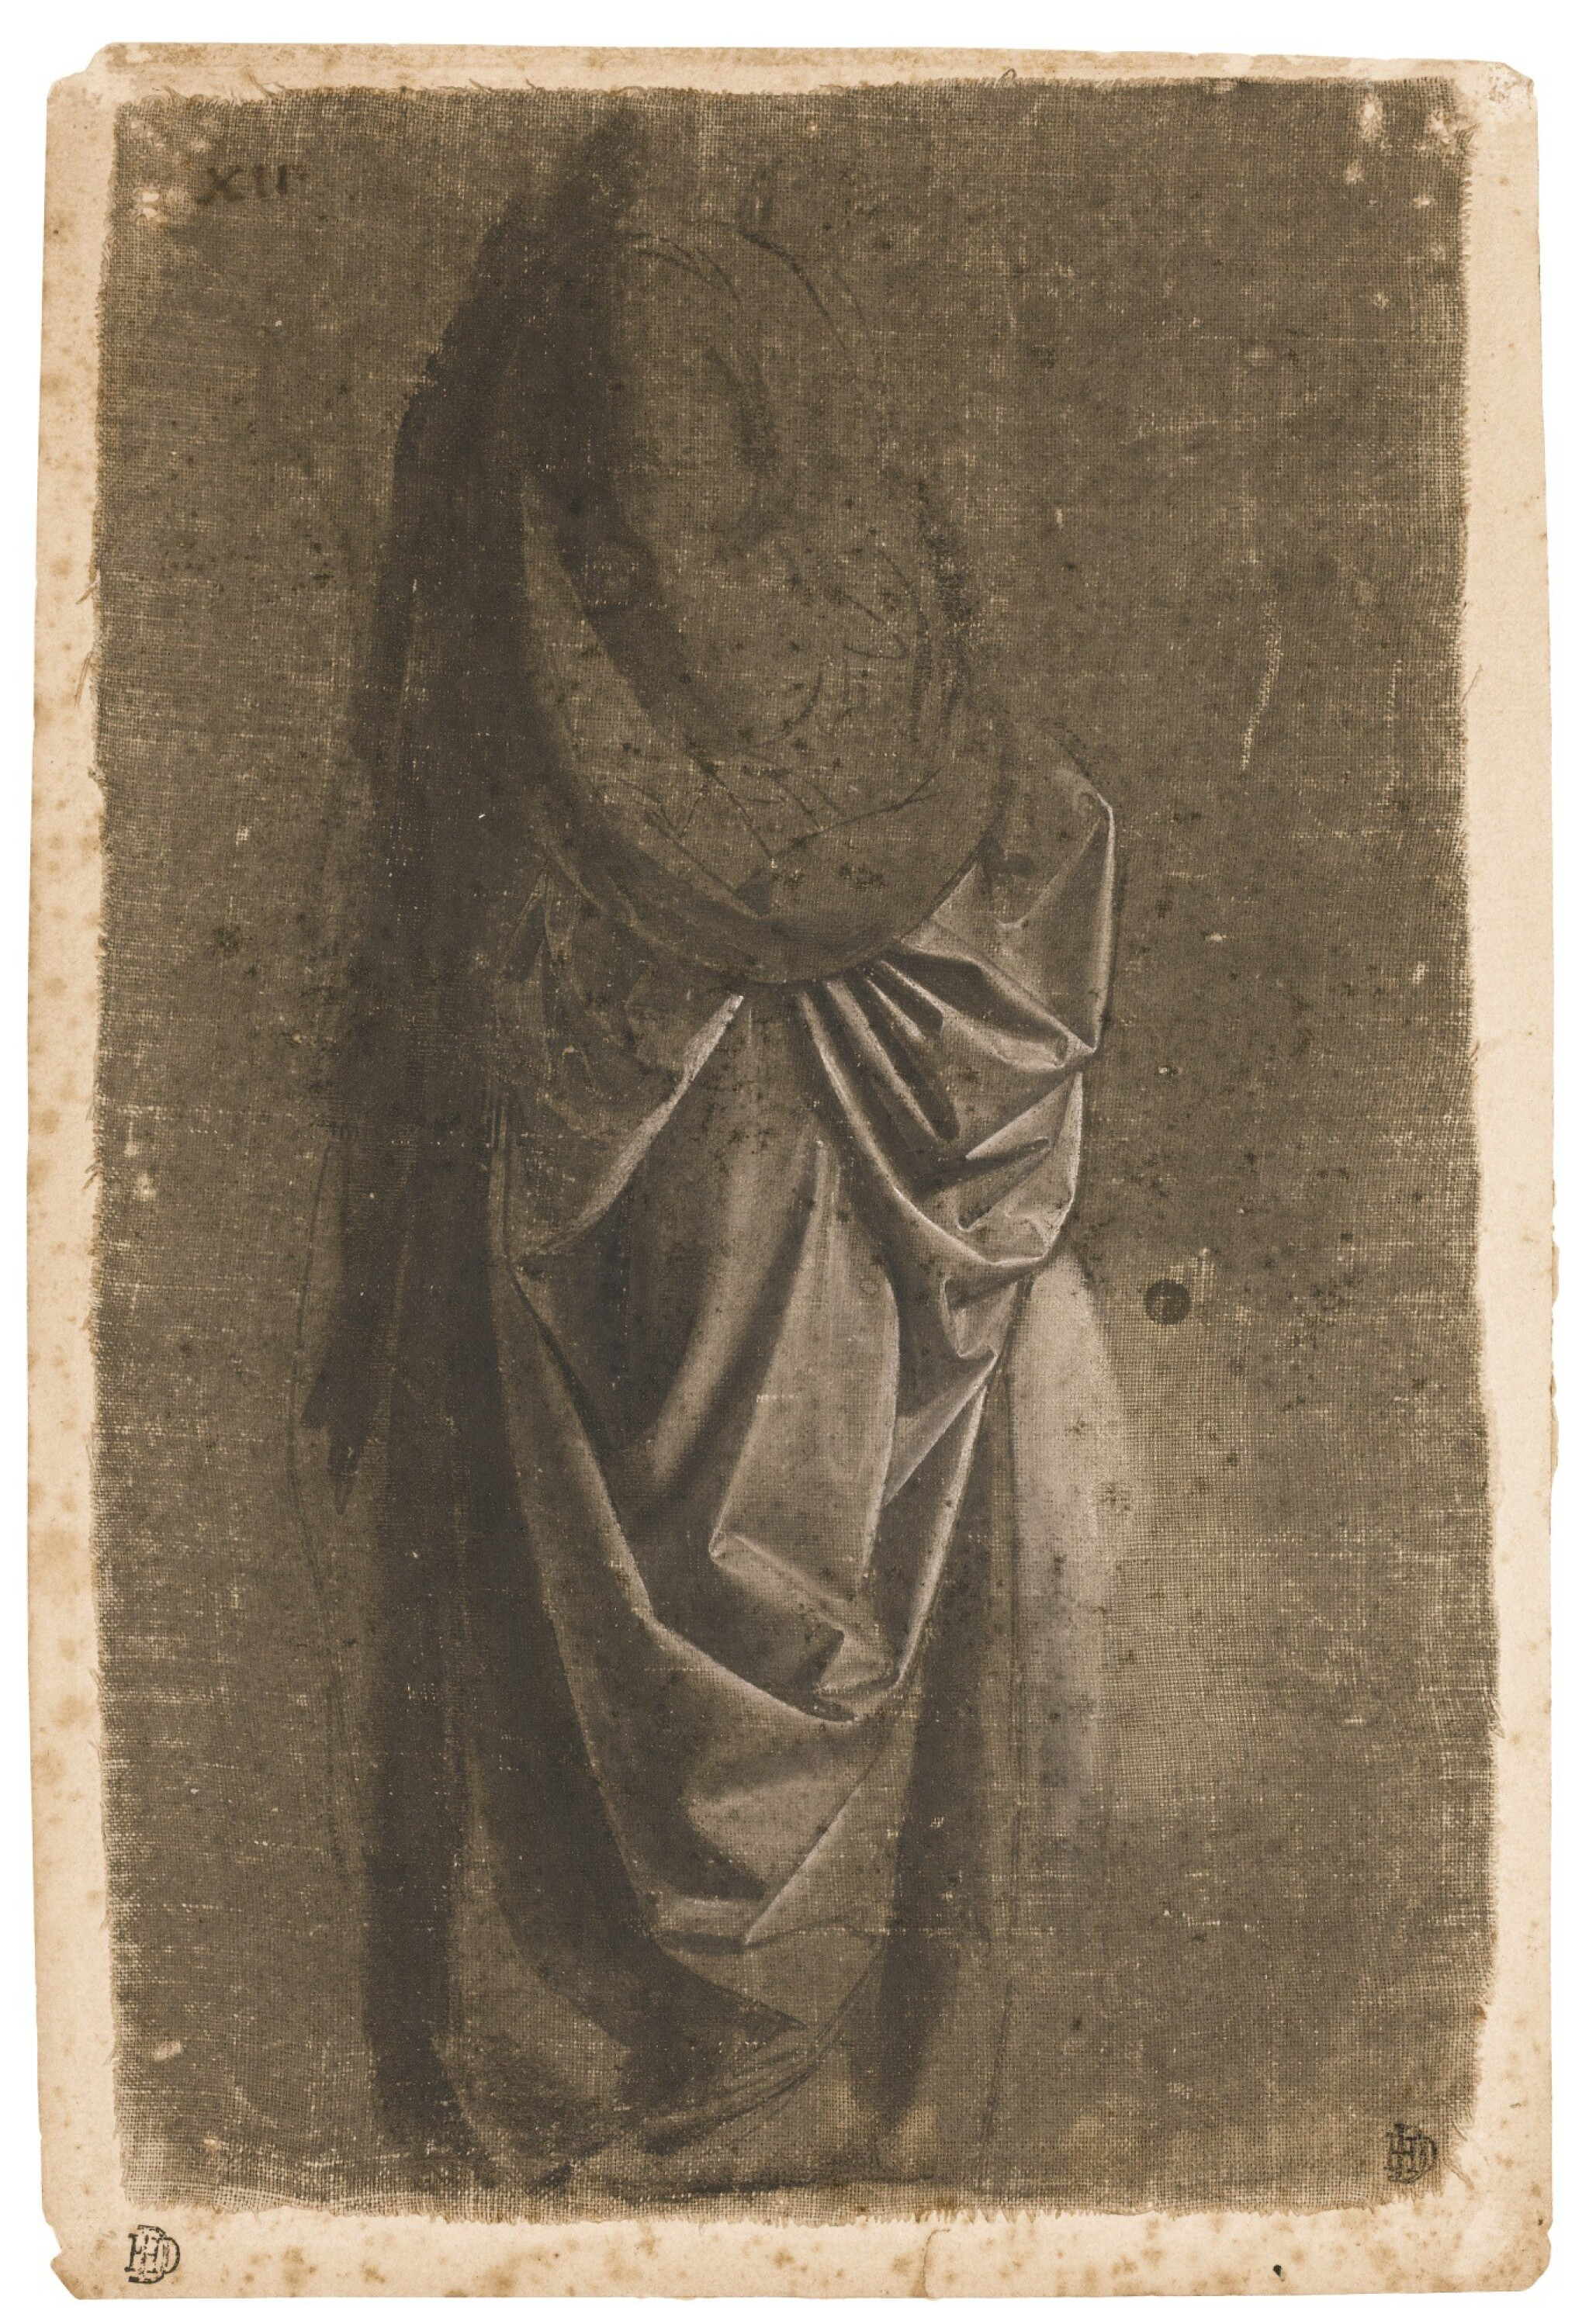 View 1 of Lot 40. ANDREA DEL VERROCCHIO  |  DRAPERY STUDY OF A STANDING FIGURE FACING RIGHT, IN PROFILE.